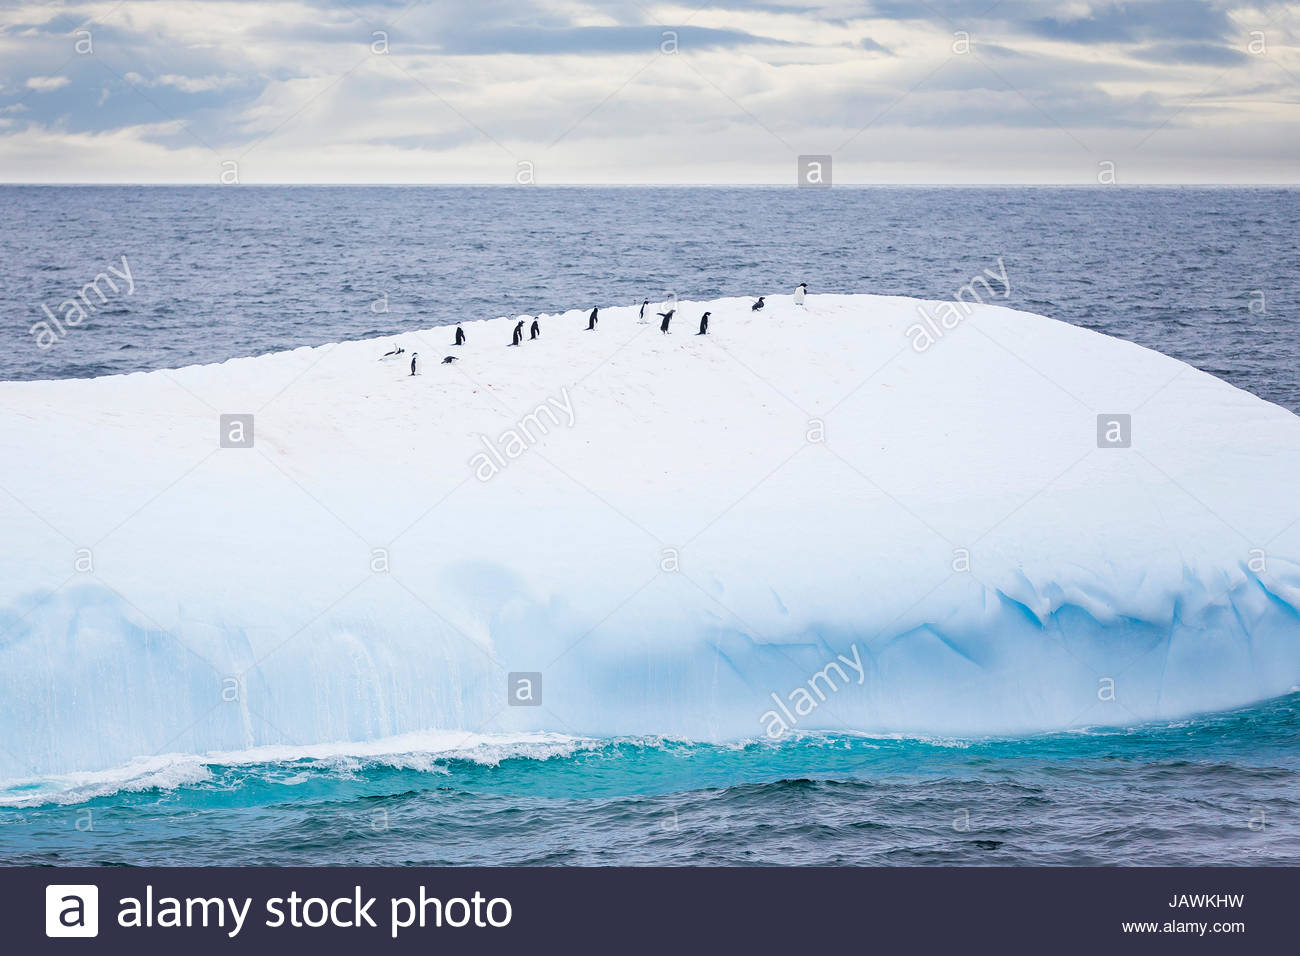 Penguins on top of an iceberg in Antarctica. - Stock Image